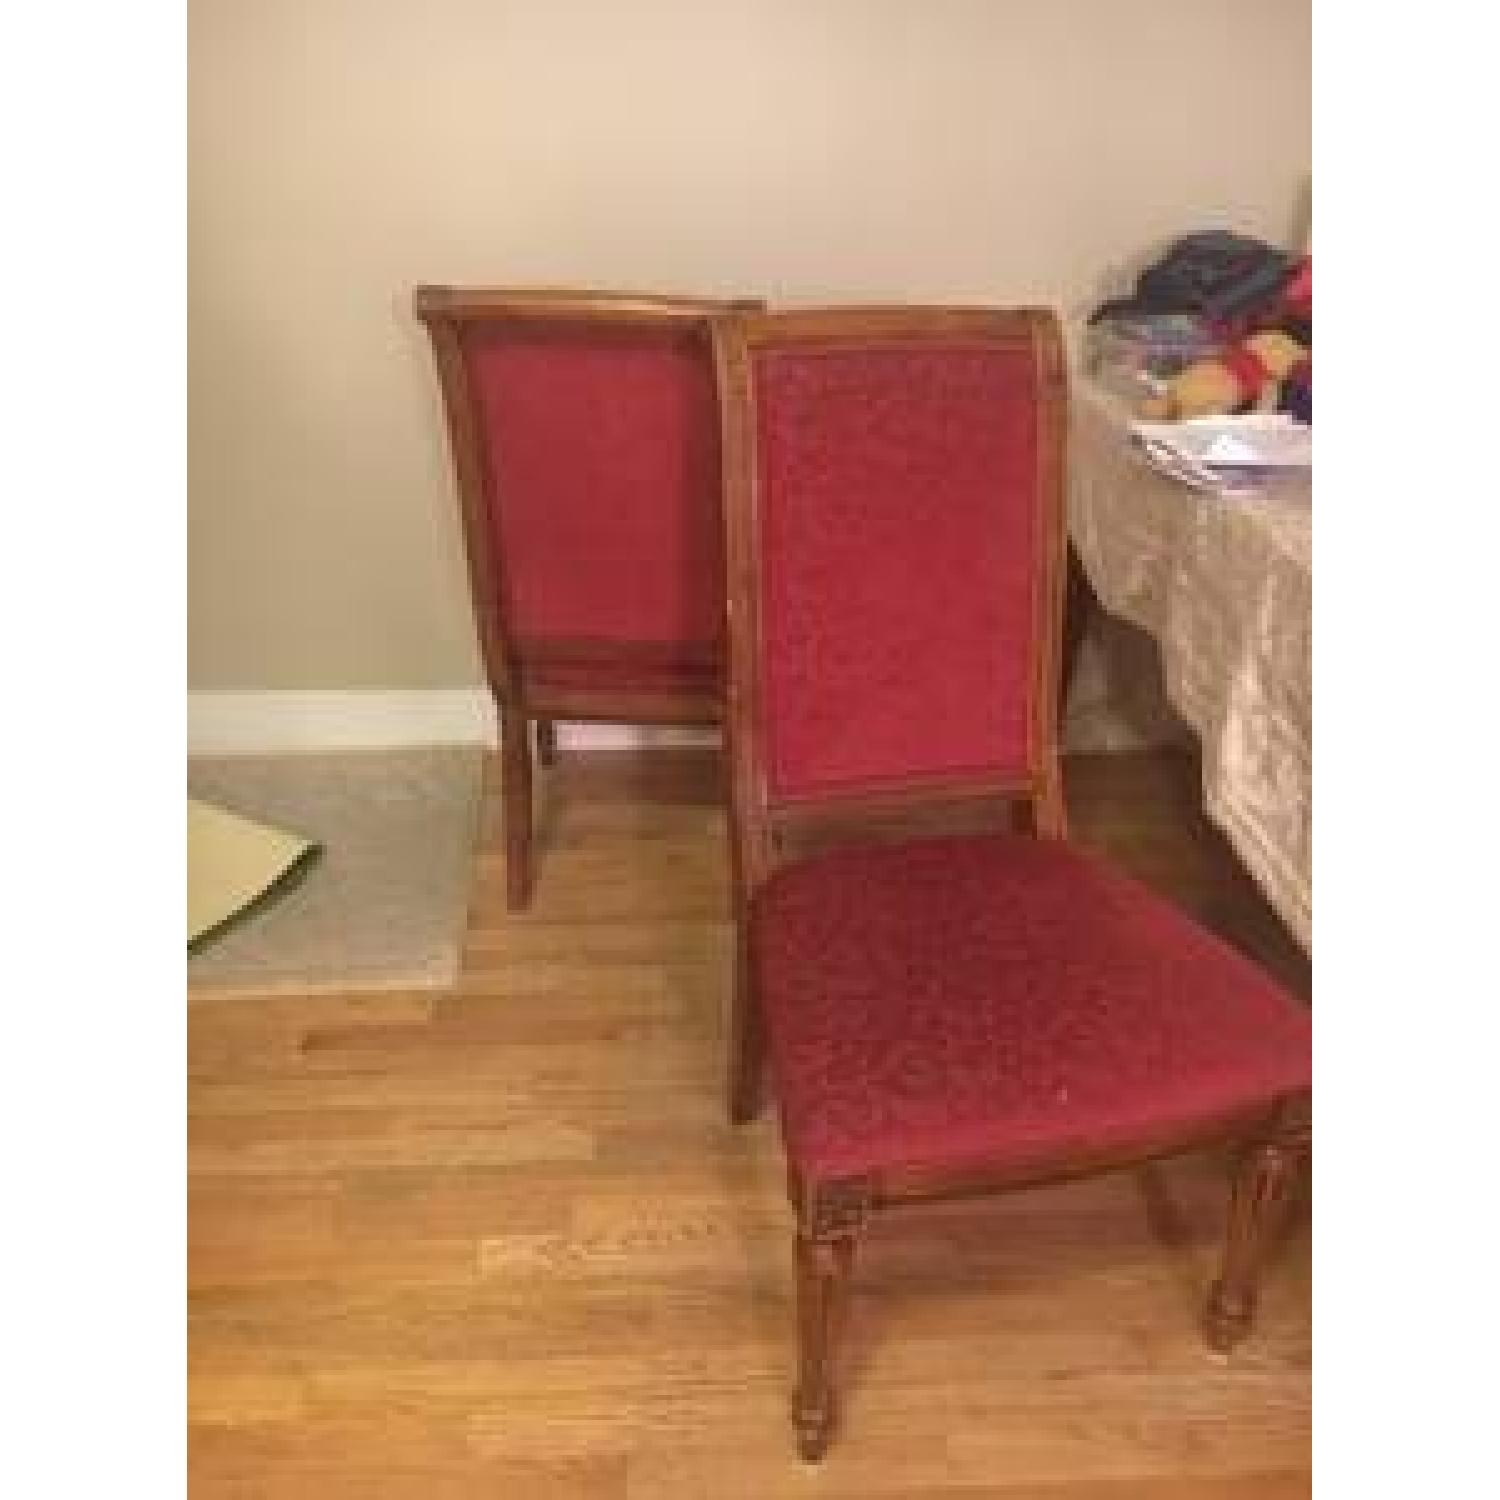 Ethan Allen Townhouse Dining Room Table w/ 6 Chairs - image-3